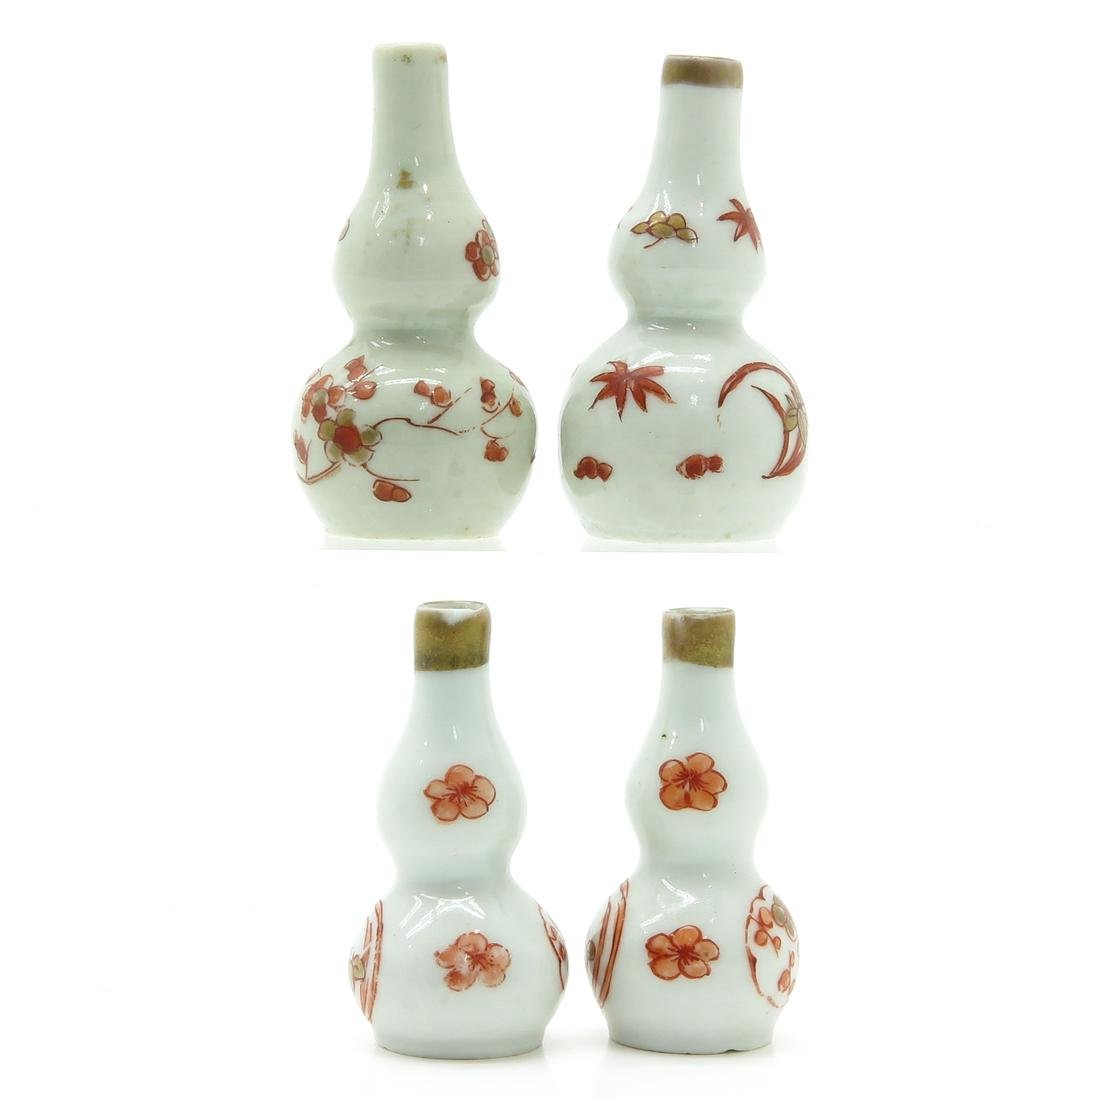 Two Pair of Miniature Doll House Vases - 4